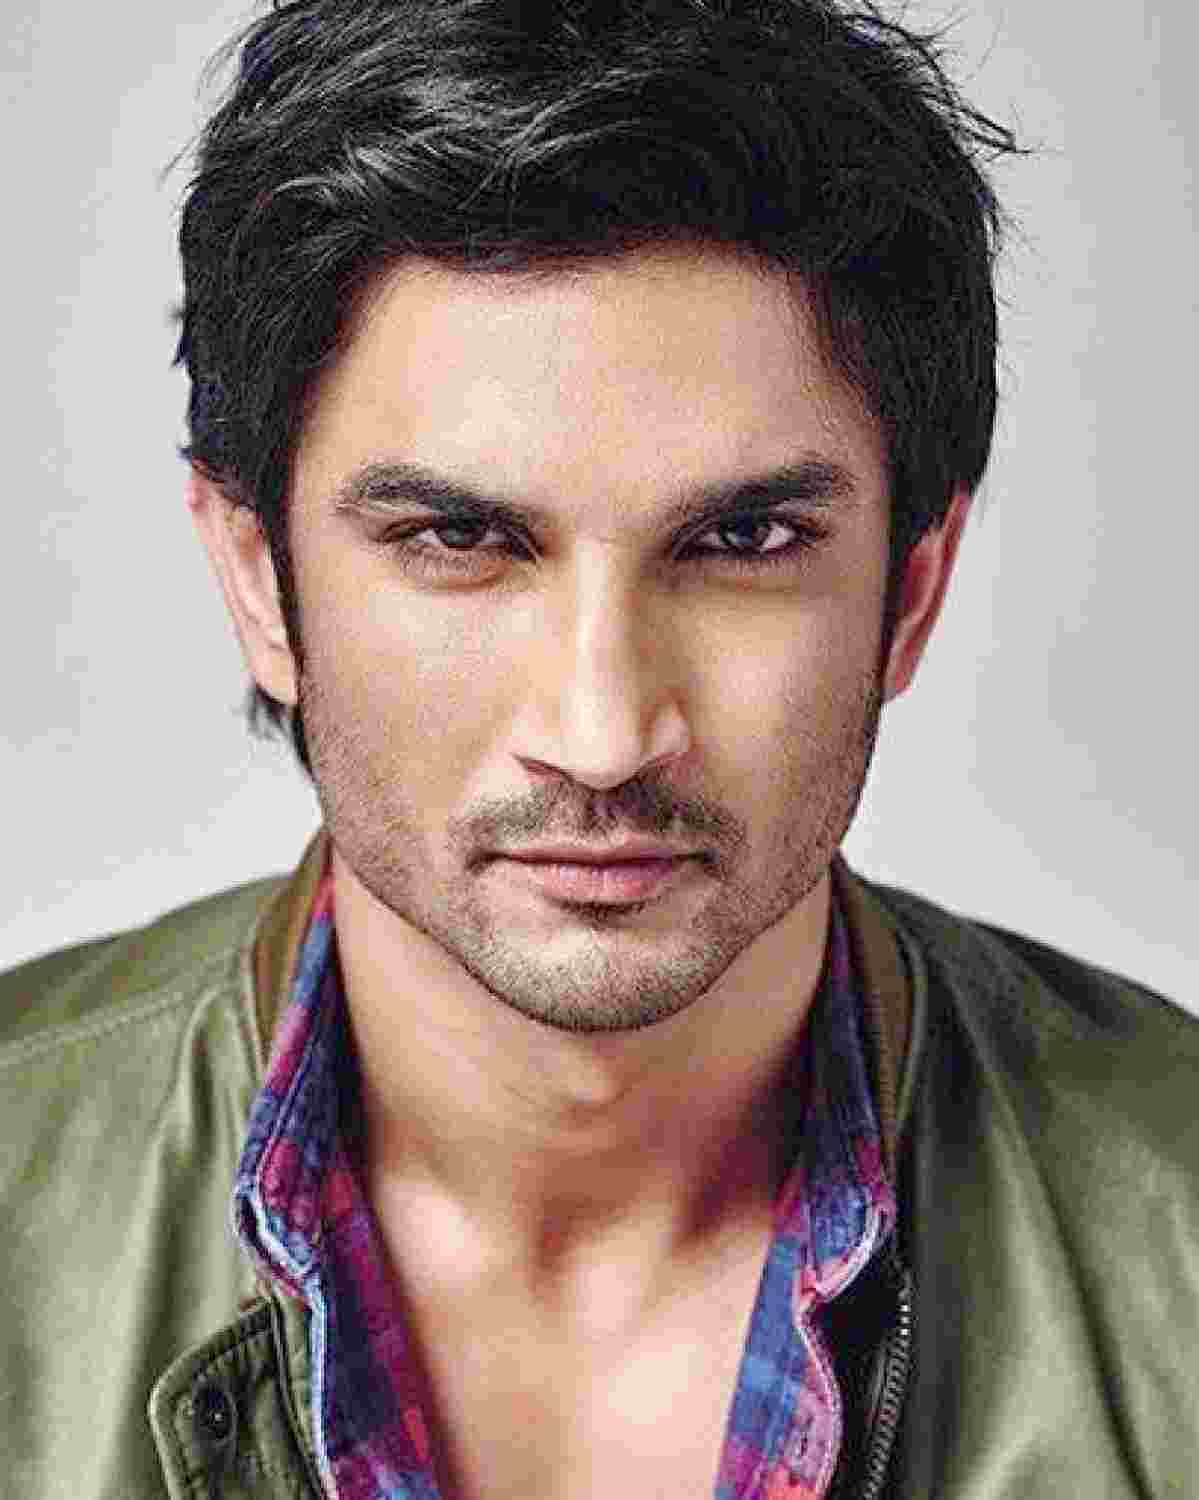 Sushant Singh Rajput suicide: Nepotism is bad, but wishing death on other actors won't fix it